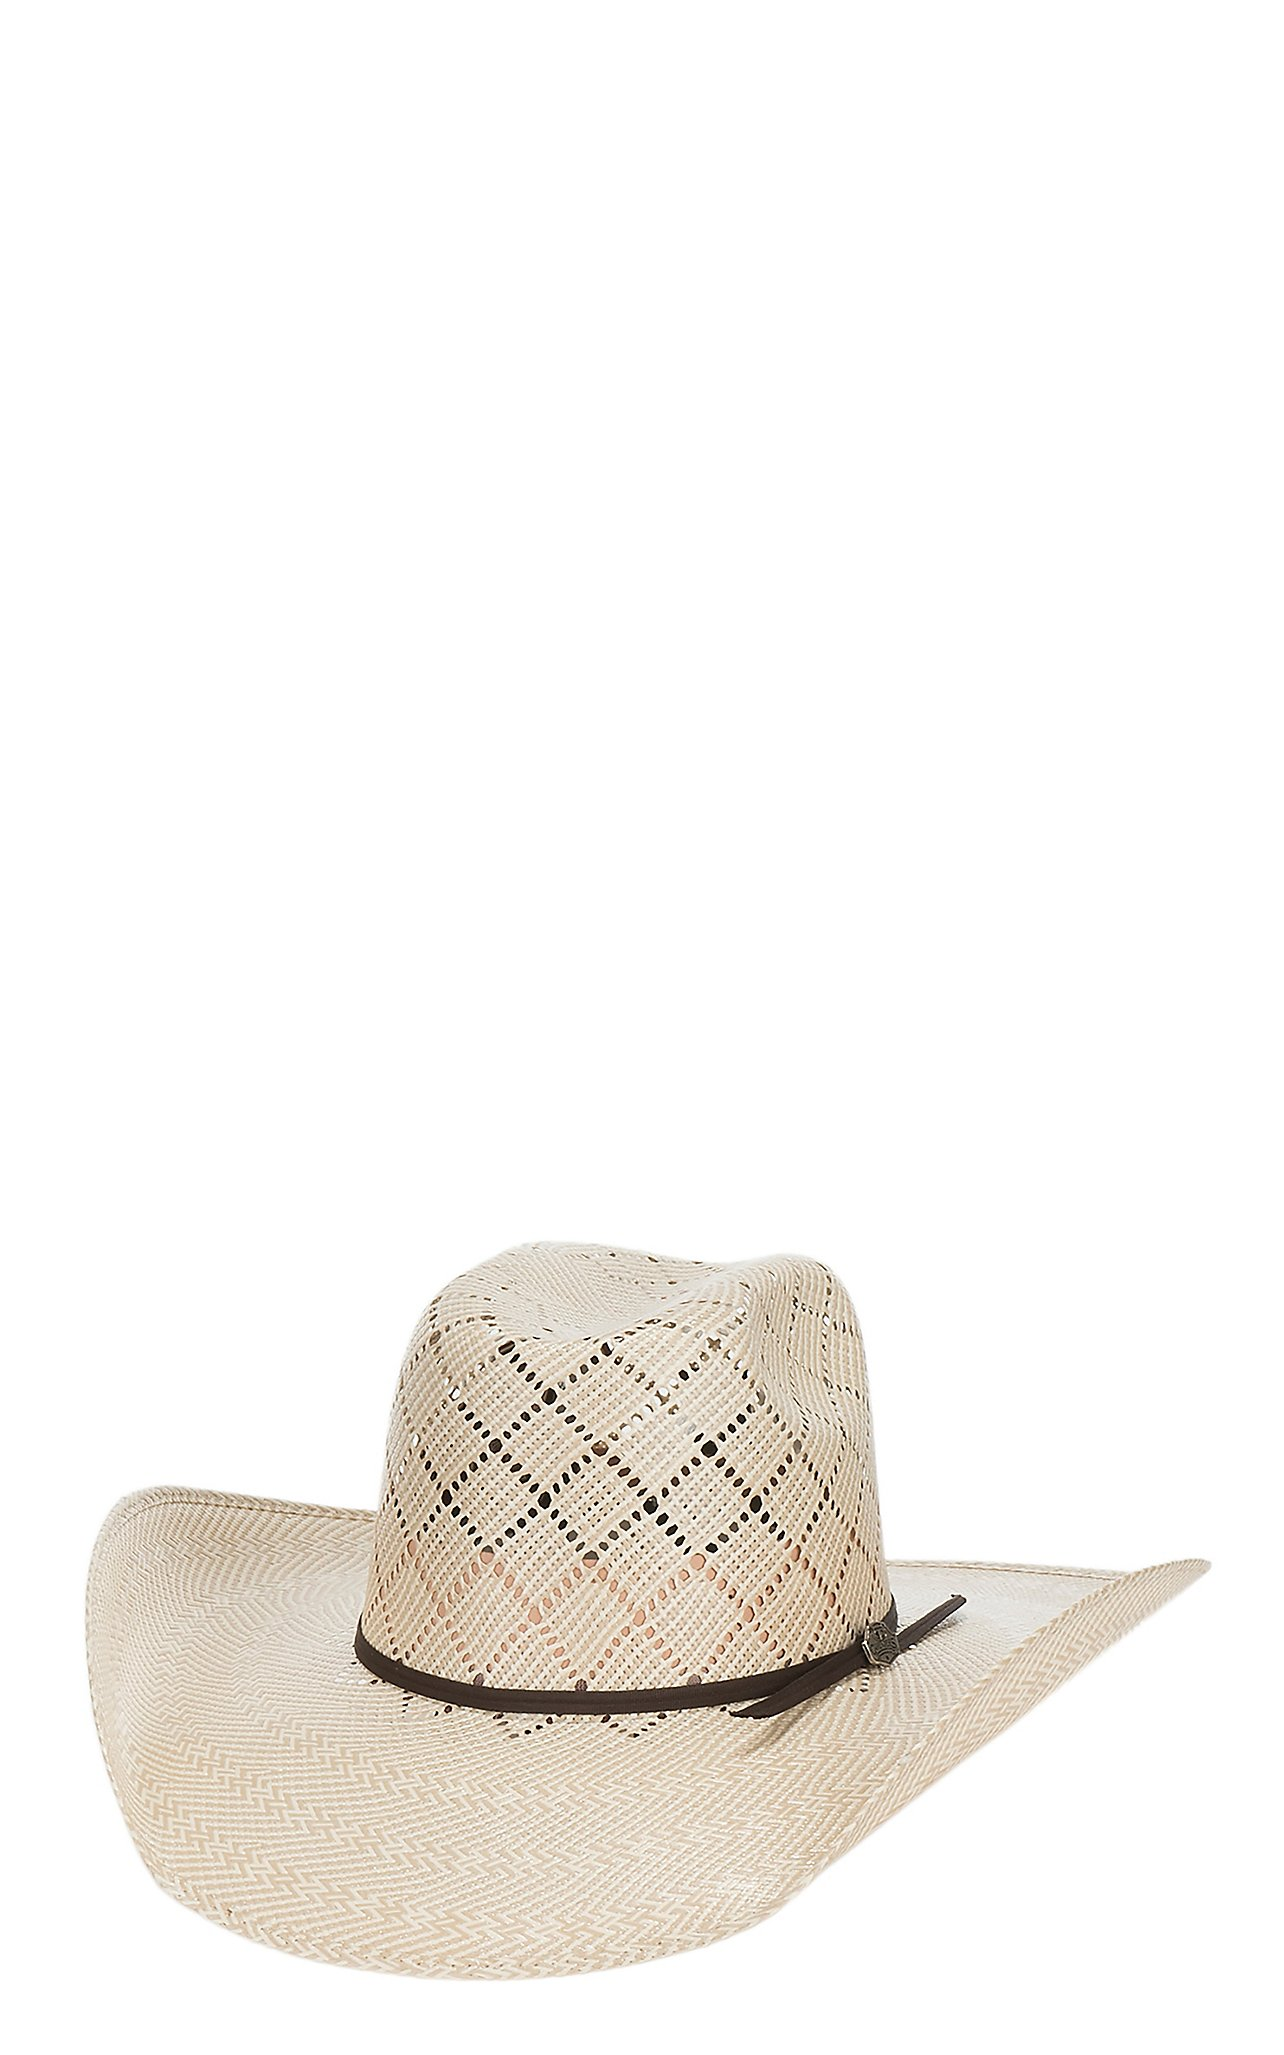 fdd71d94cbd Cavender s Cowboy Collection 20X Two Tone Crisscross Vented Straw Hat